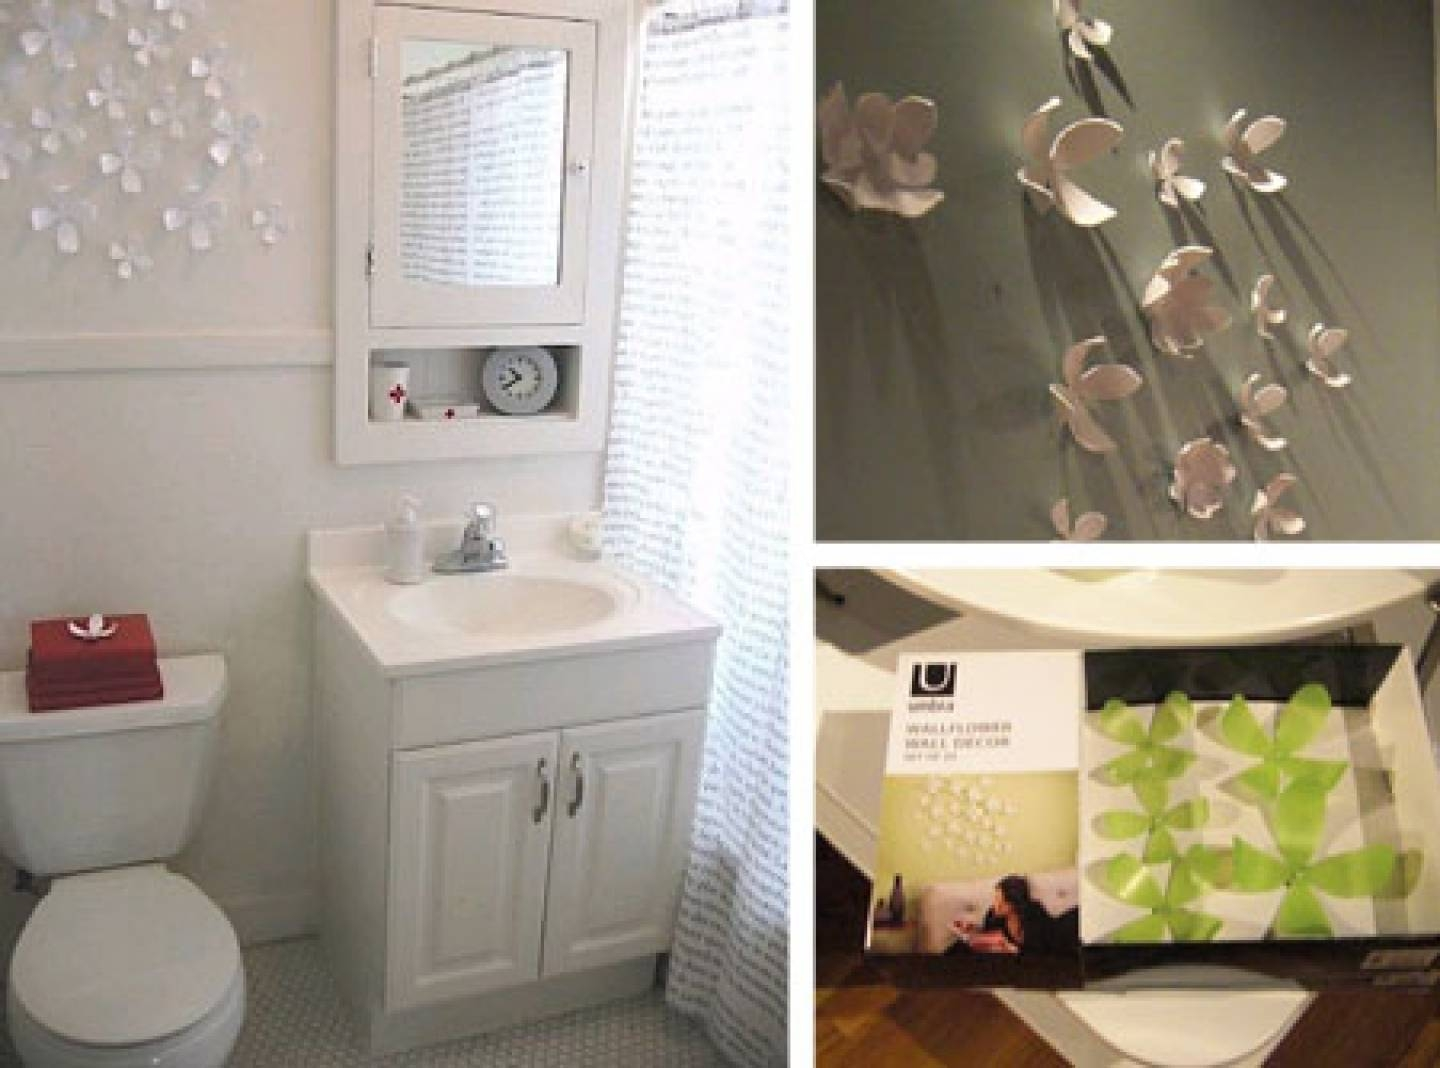 Download Bathroom Wall Decorations | Gen4Congress For Most Up To Date Bathroom Wall Hangings (Gallery 19 of 20)